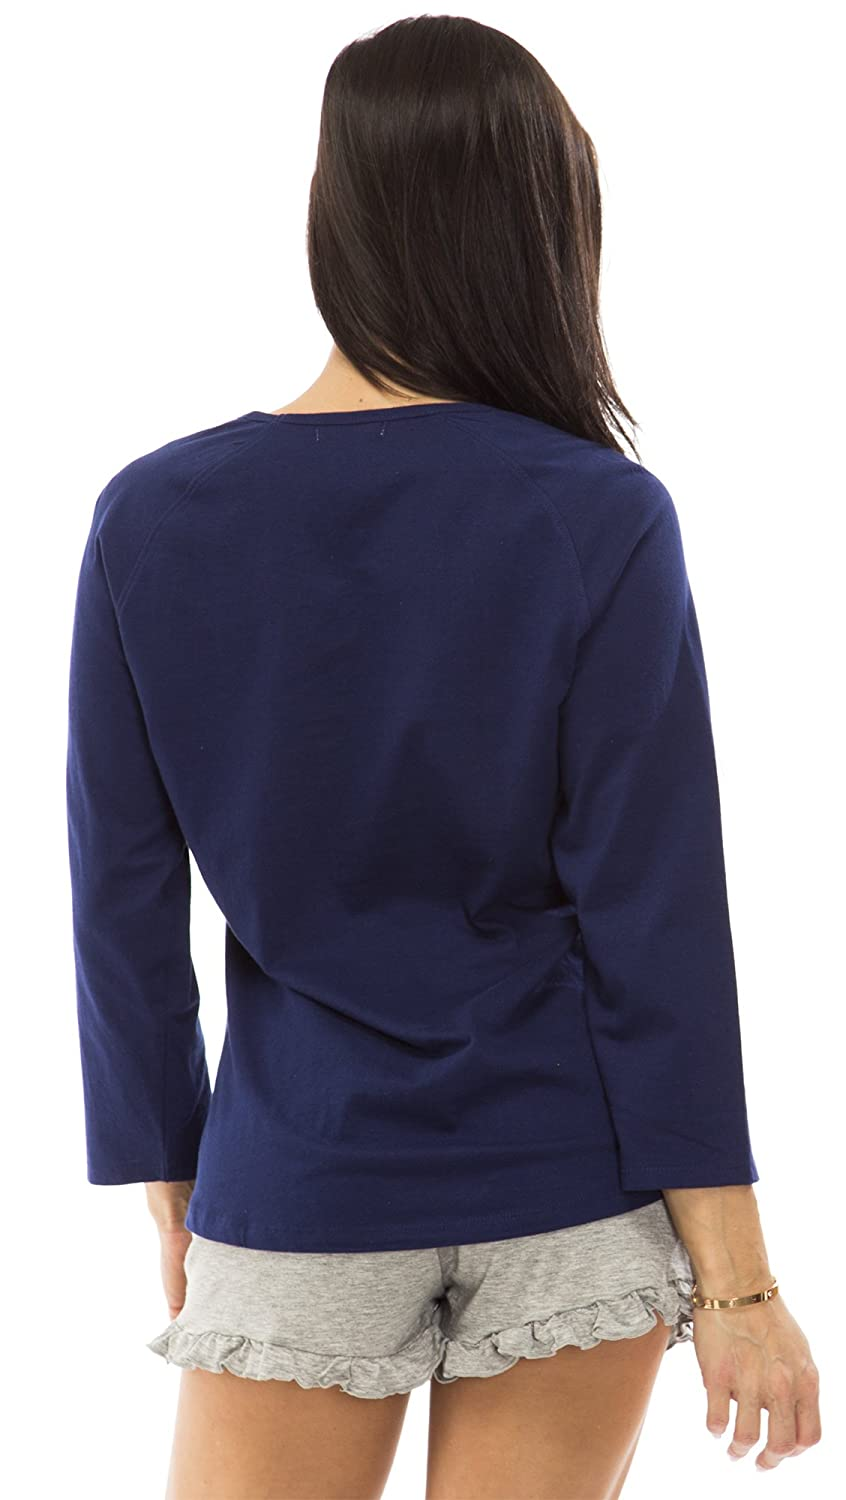 401 dollhouse 6007DH Womens 100/% Cotton Solid Jersey 3//4 Sleeve Ragan Top Size: Small In Navy